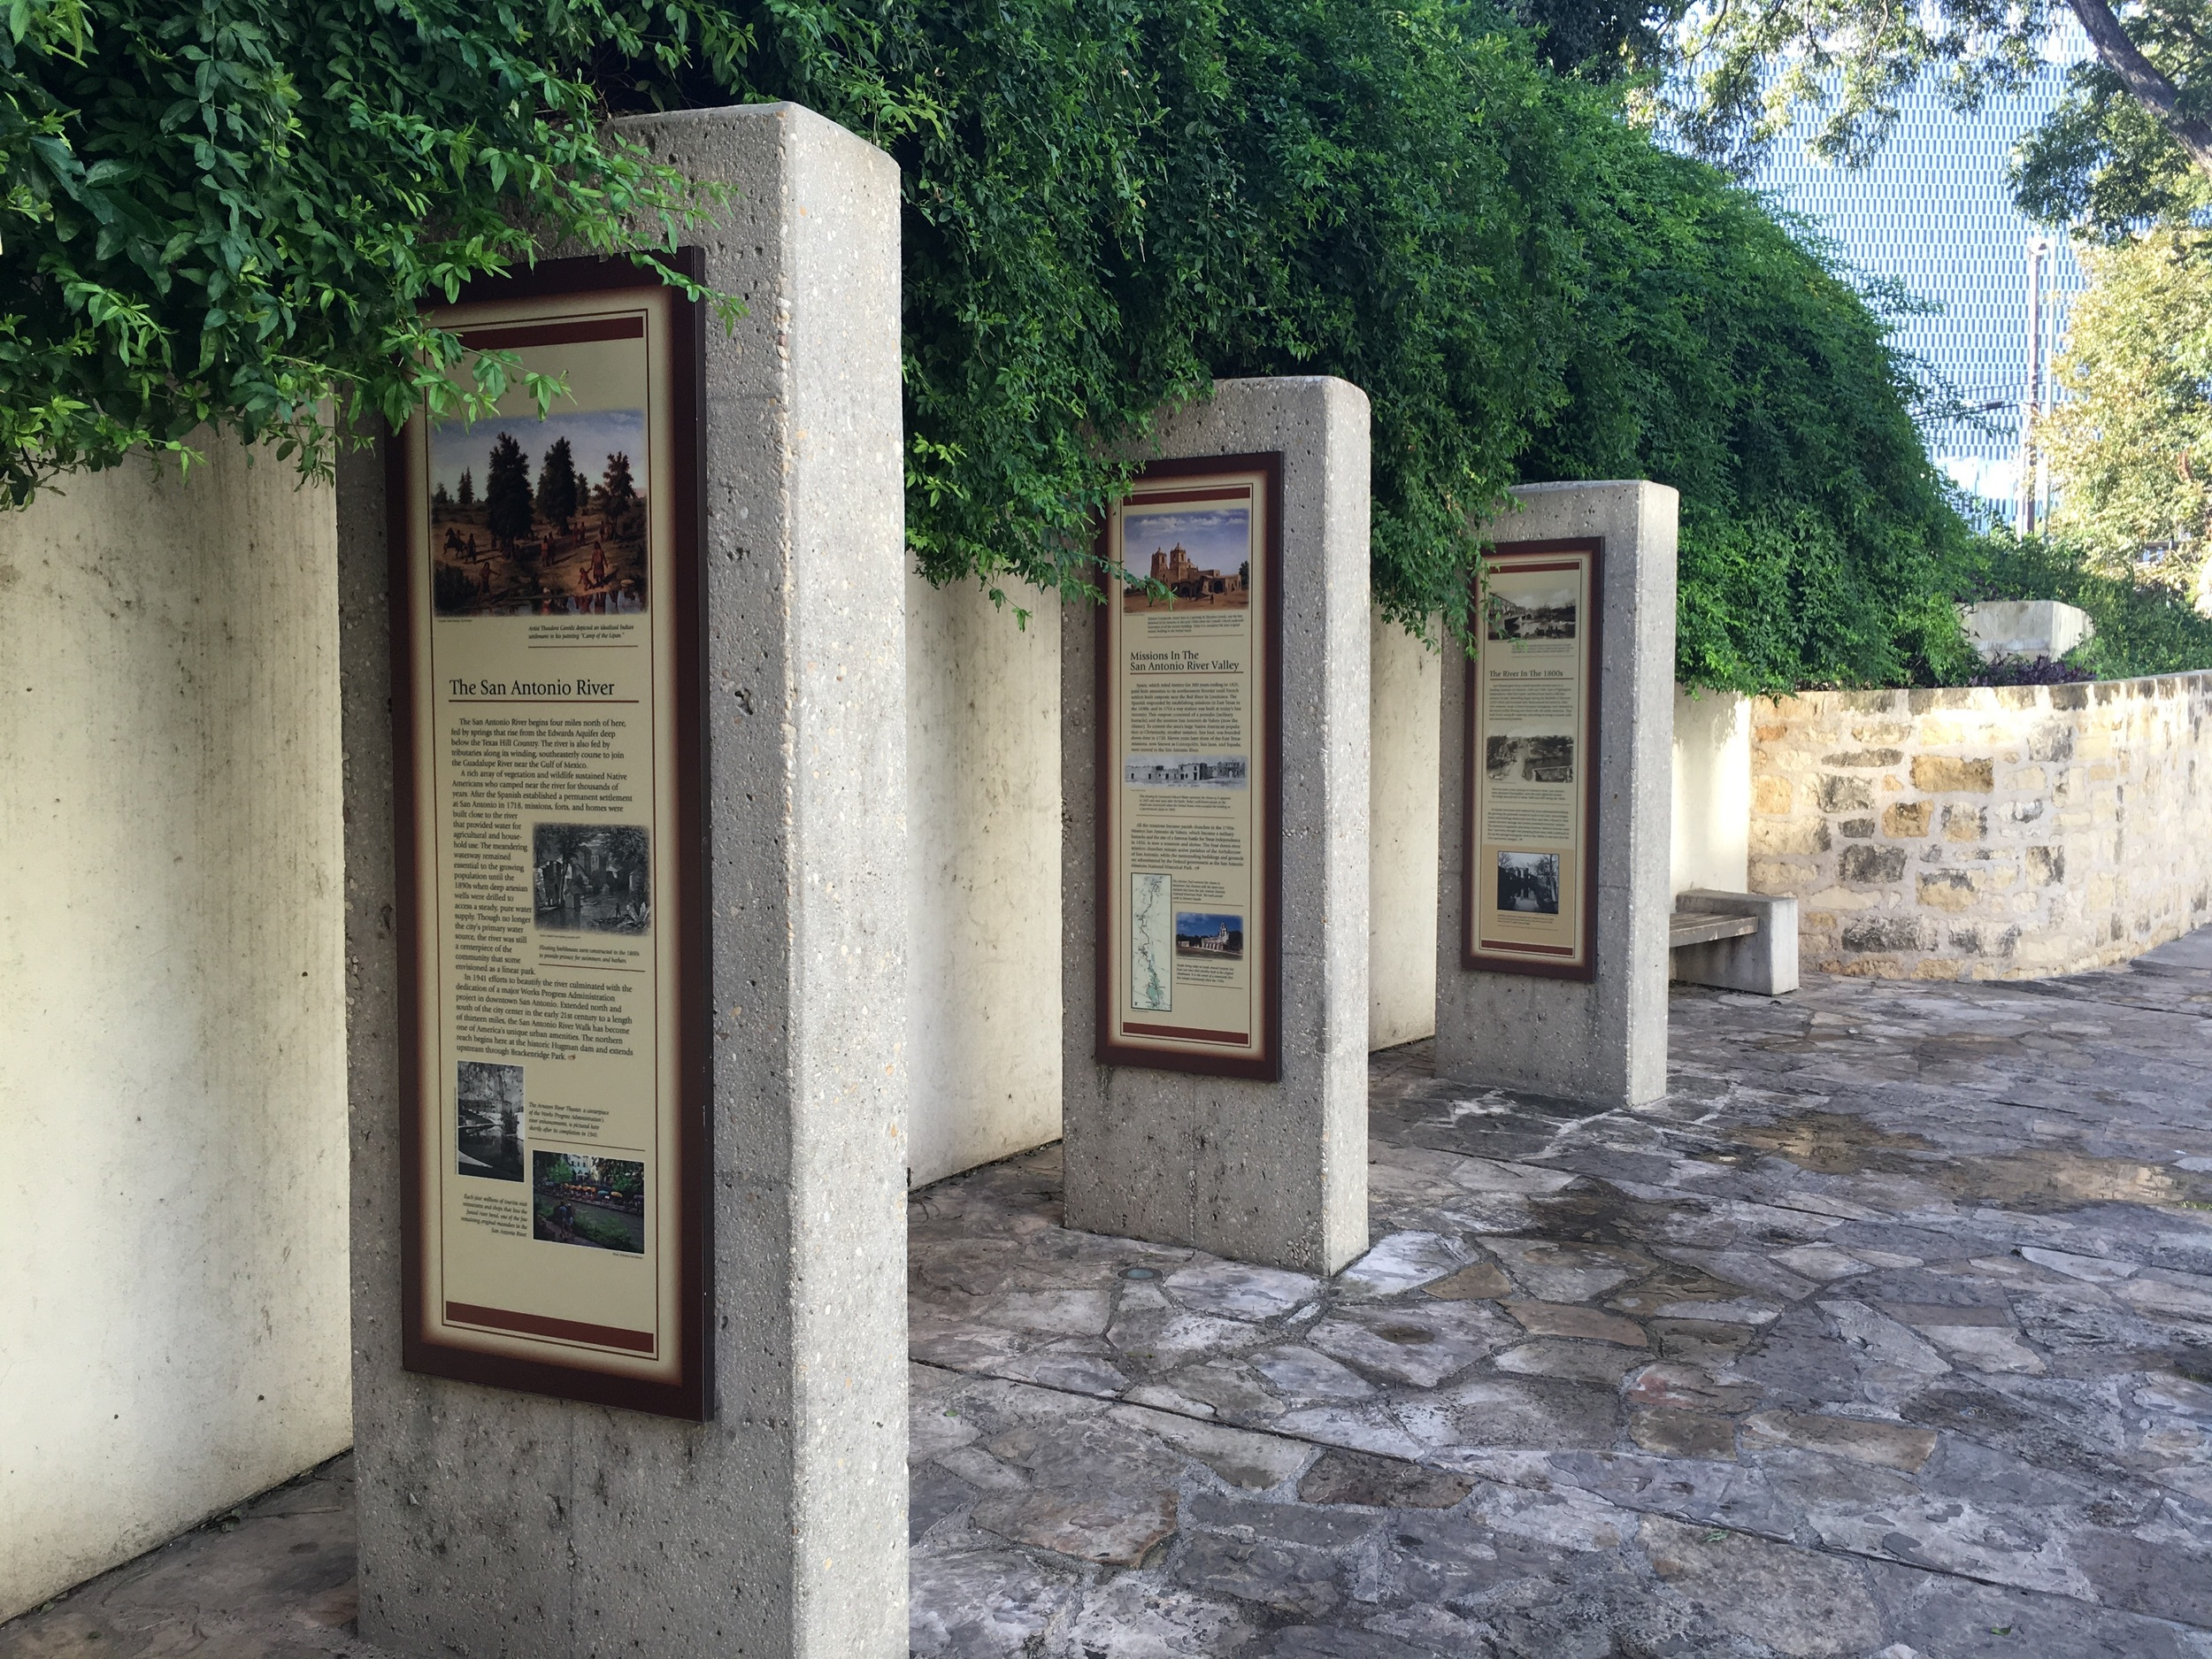 Historical placards along the route